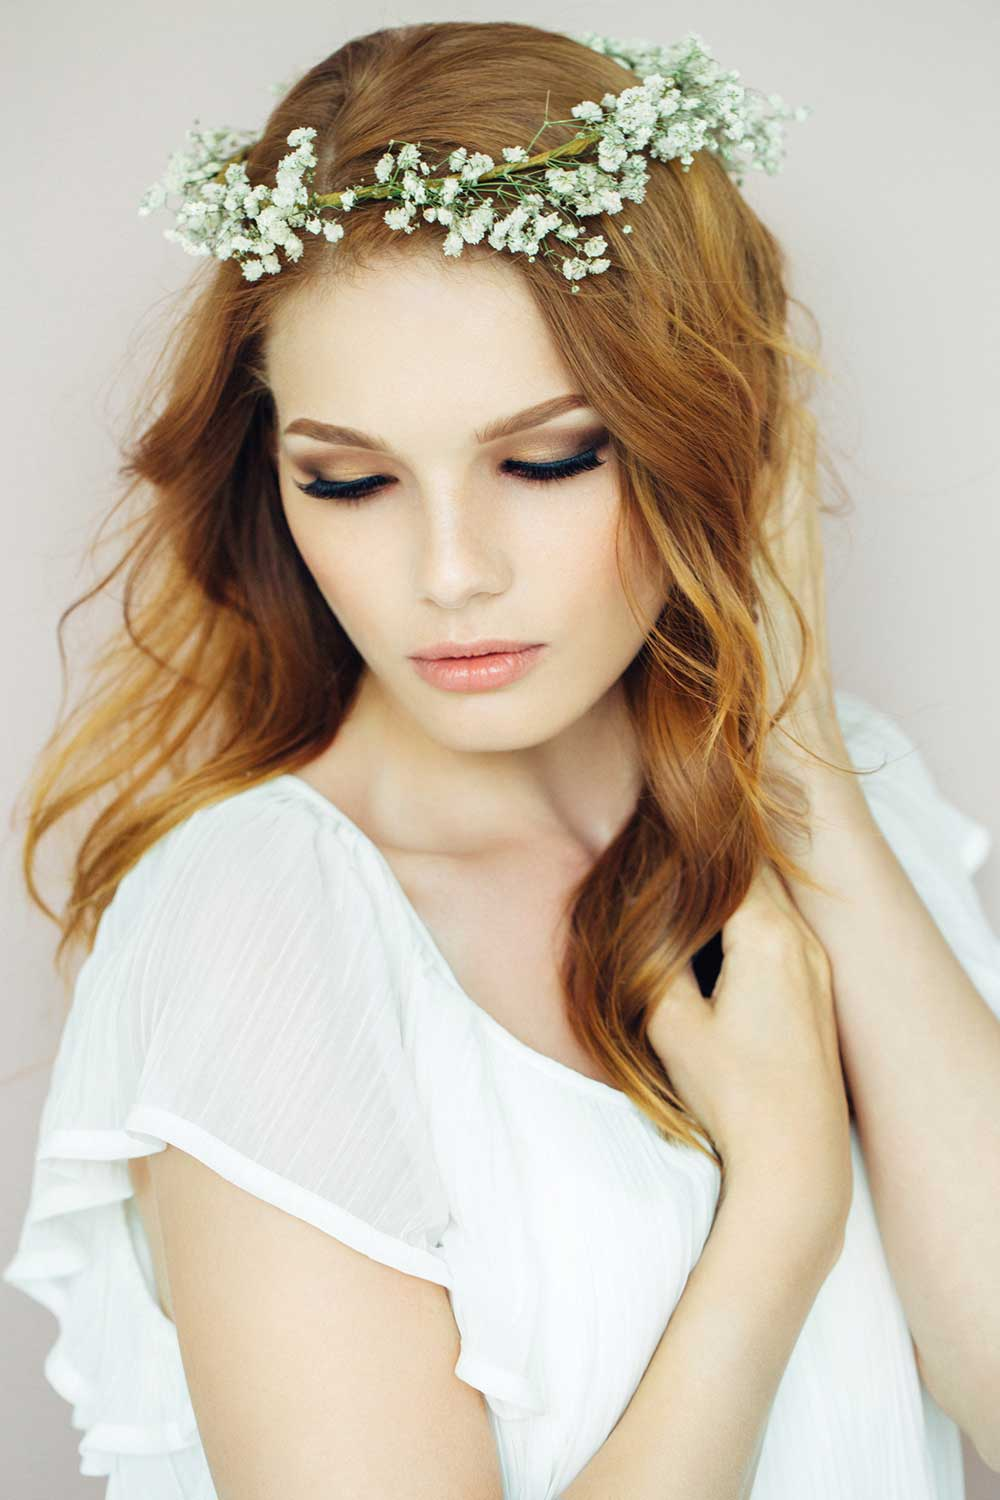 Bridal Makeup Services in White Rock